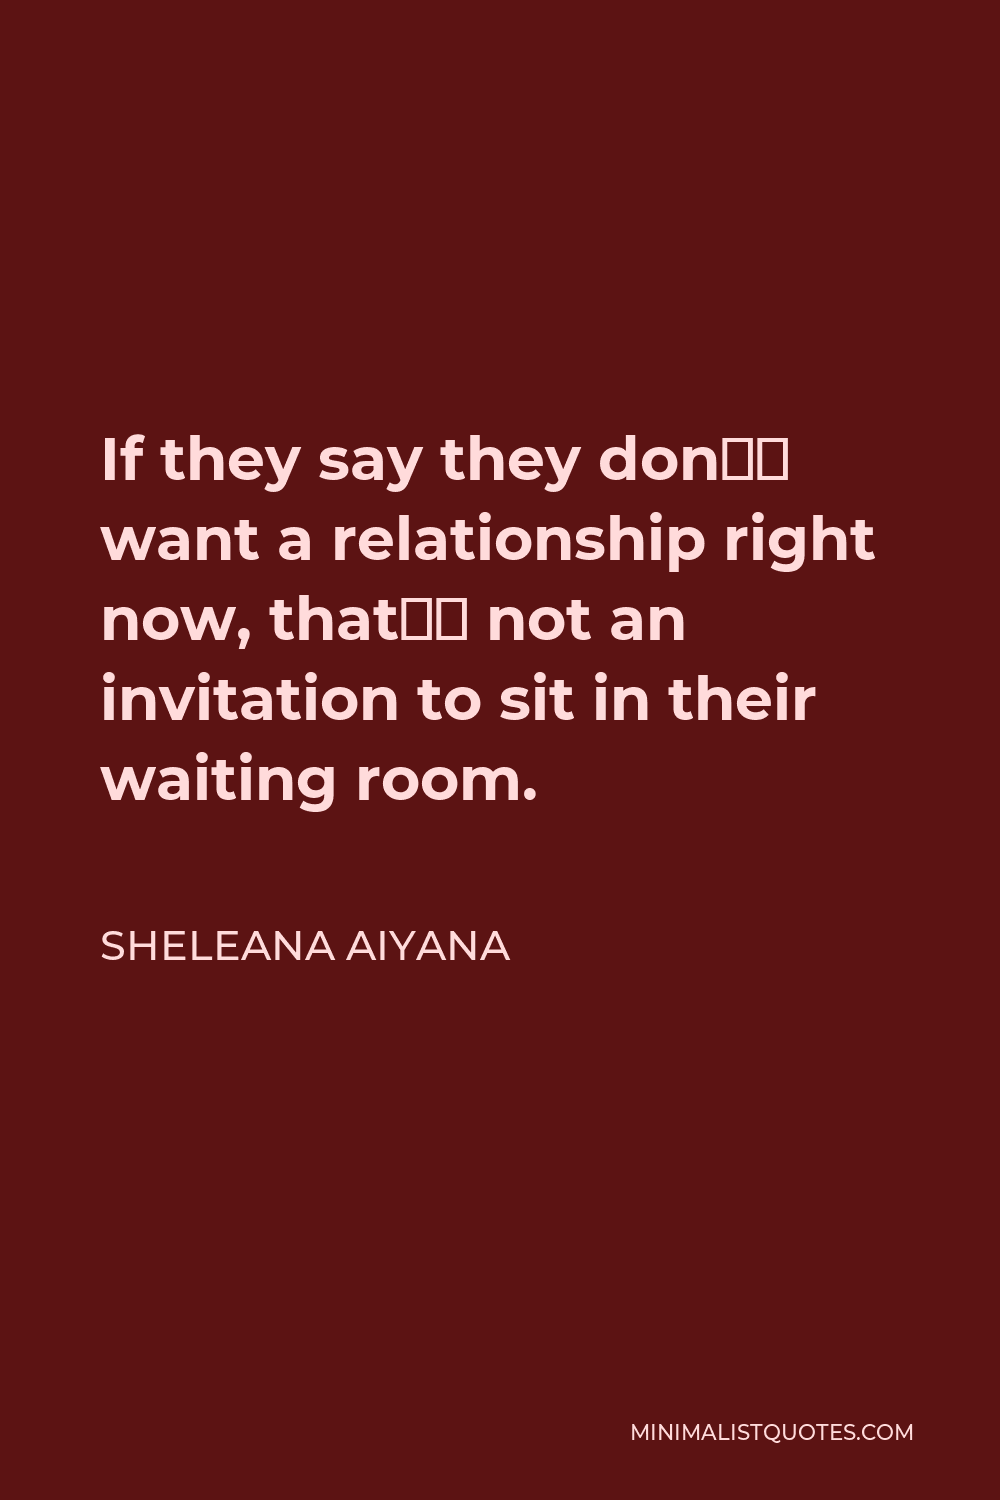 Sheleana Aiyana Quote - If they say they don't want a relationship right now, that's not an invitation to sit in their waiting room.